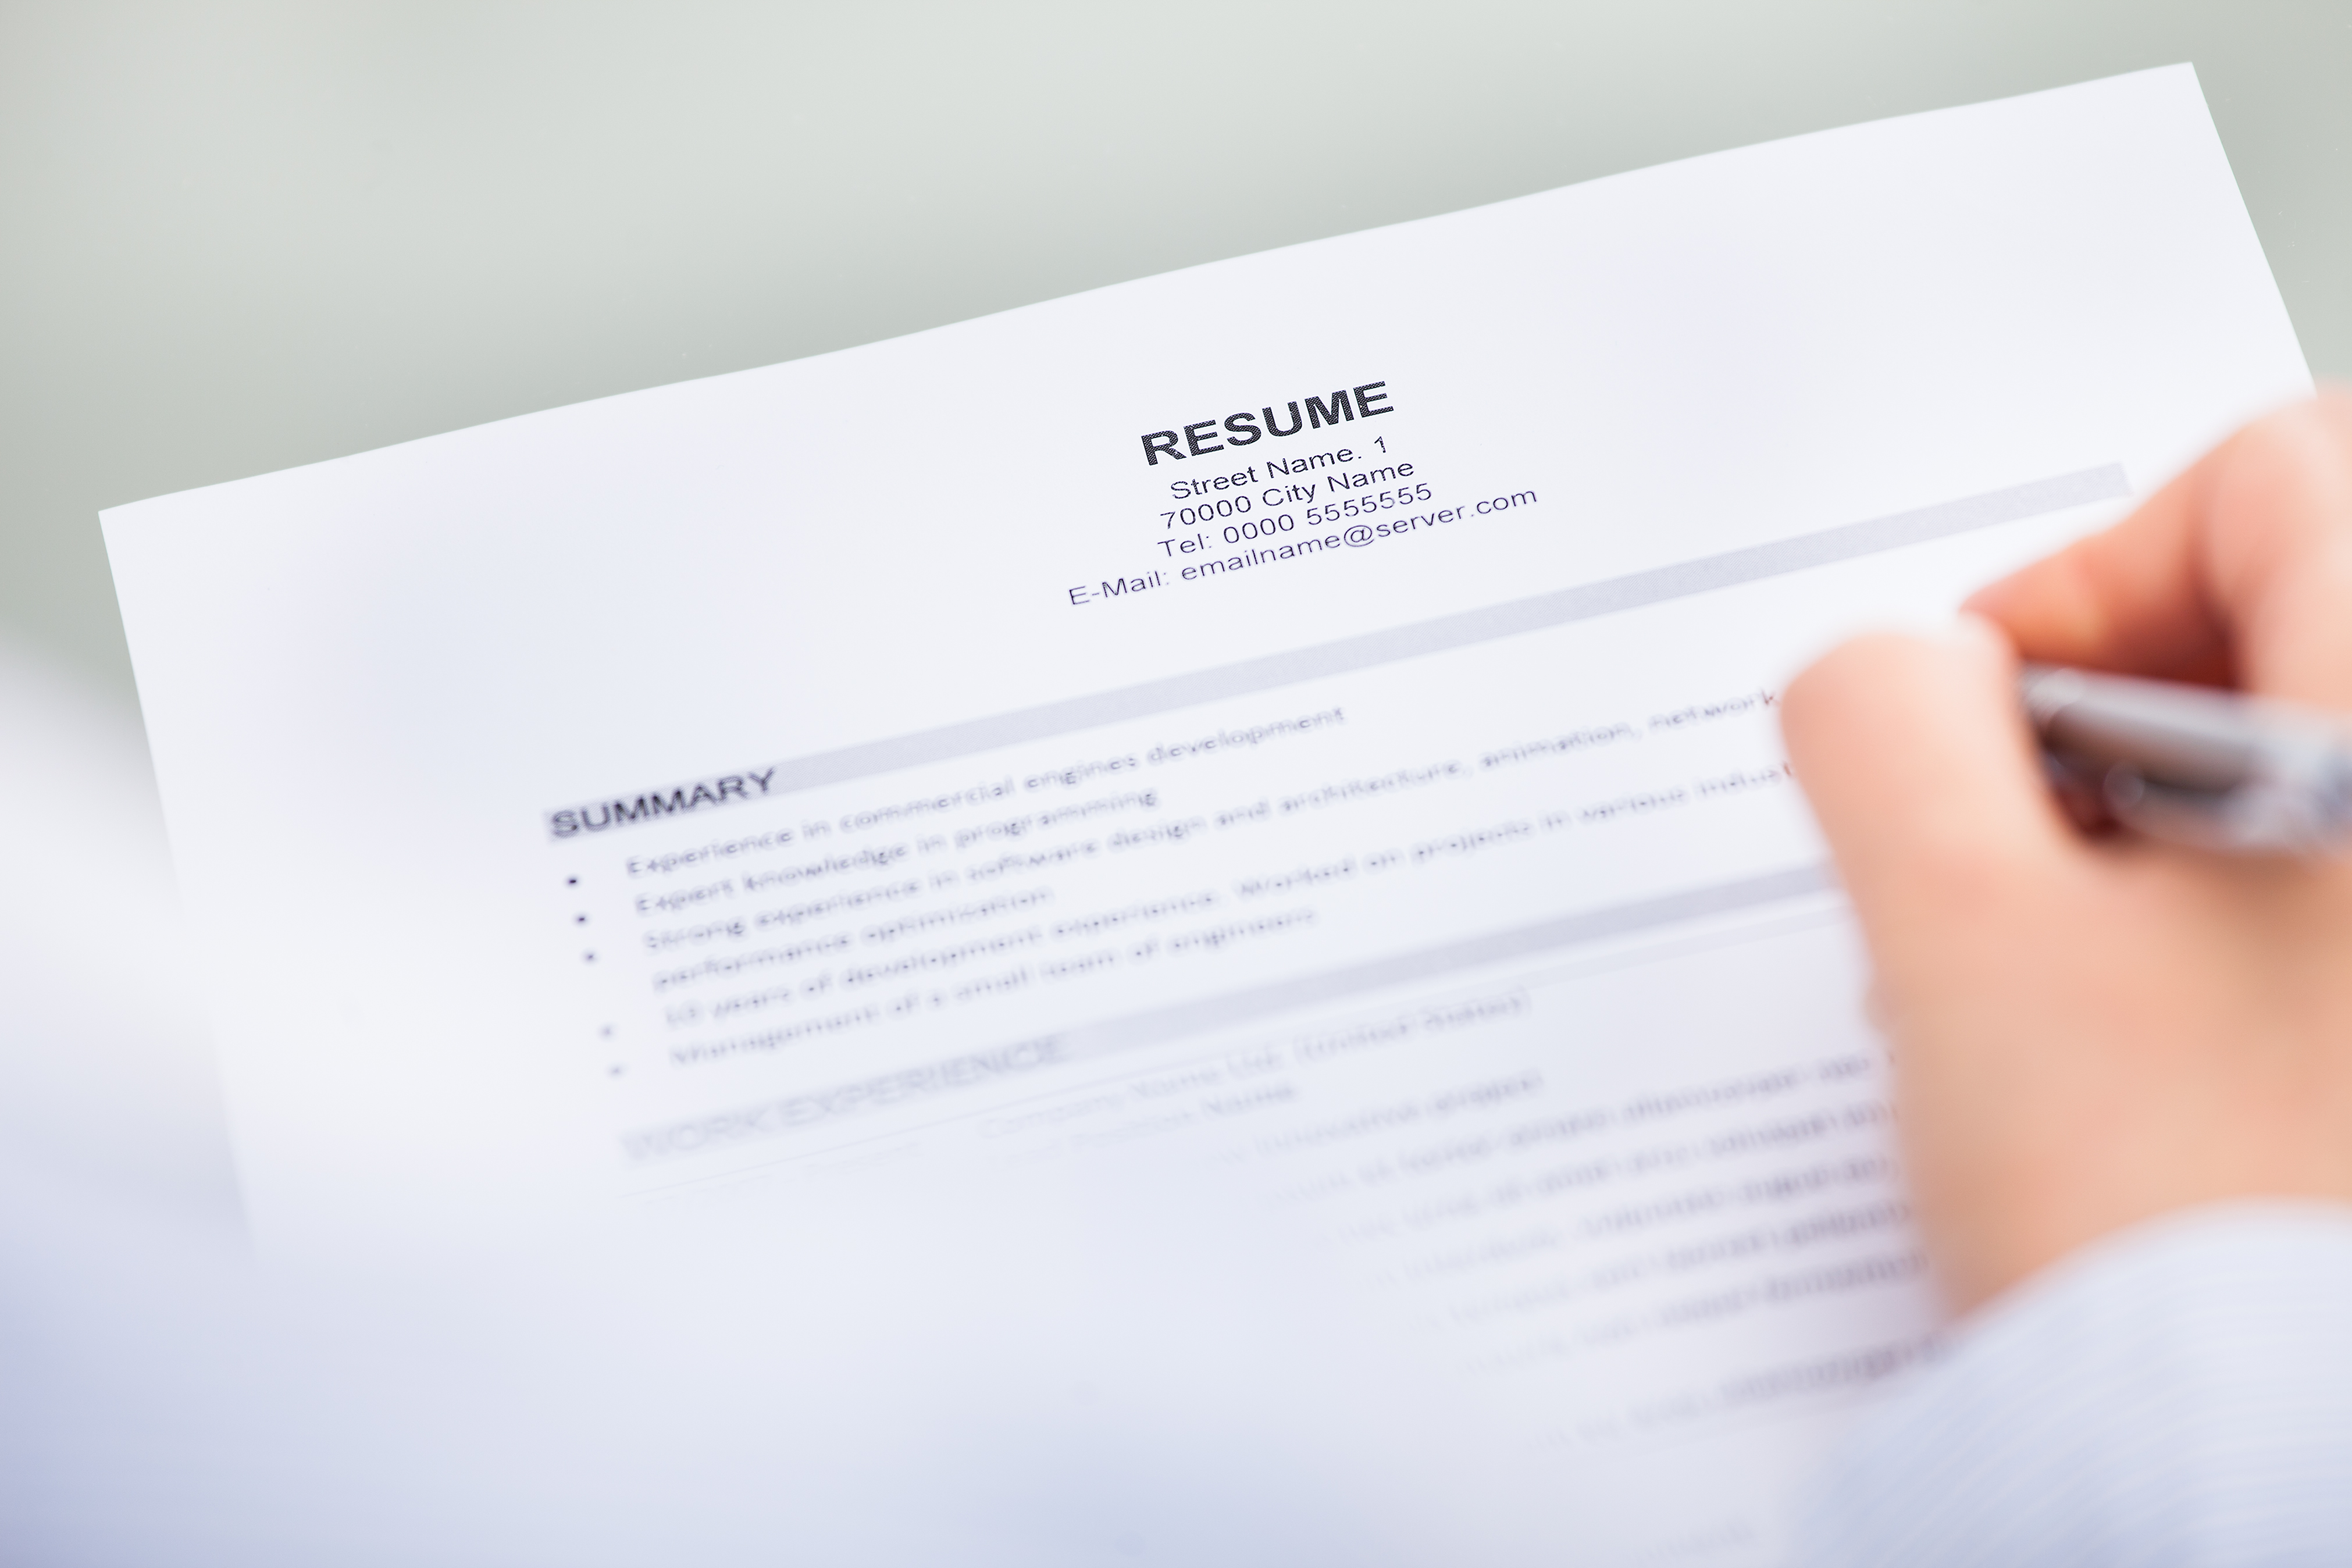 telecommuting resume writing complete guide for job seekers telecommute example large Resume Telecommute Resume Example